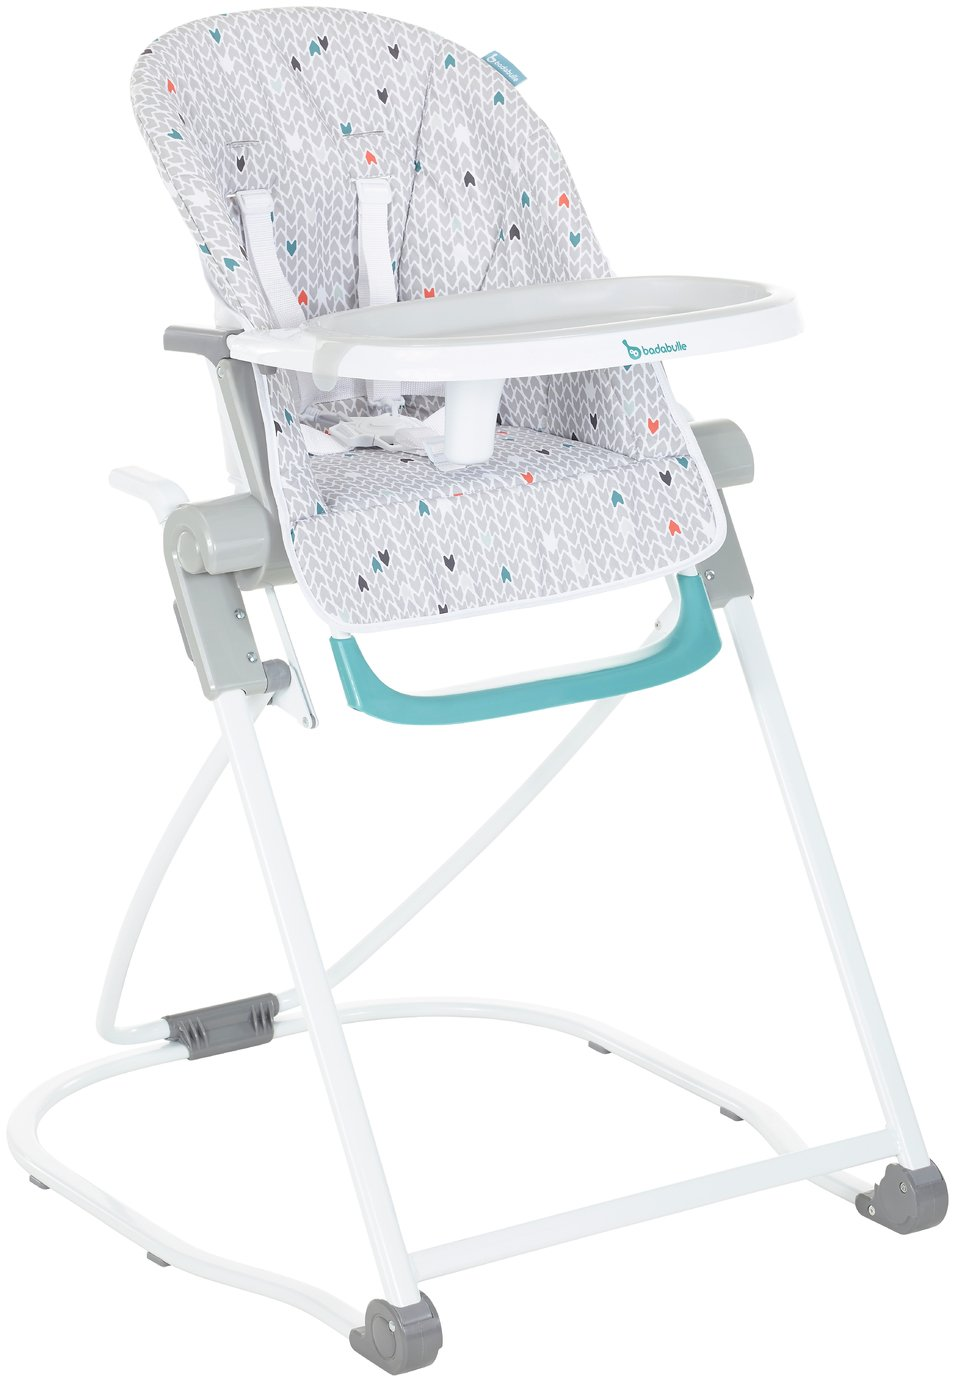 Image of Badabulle High Chair Compact - Grey Patterns